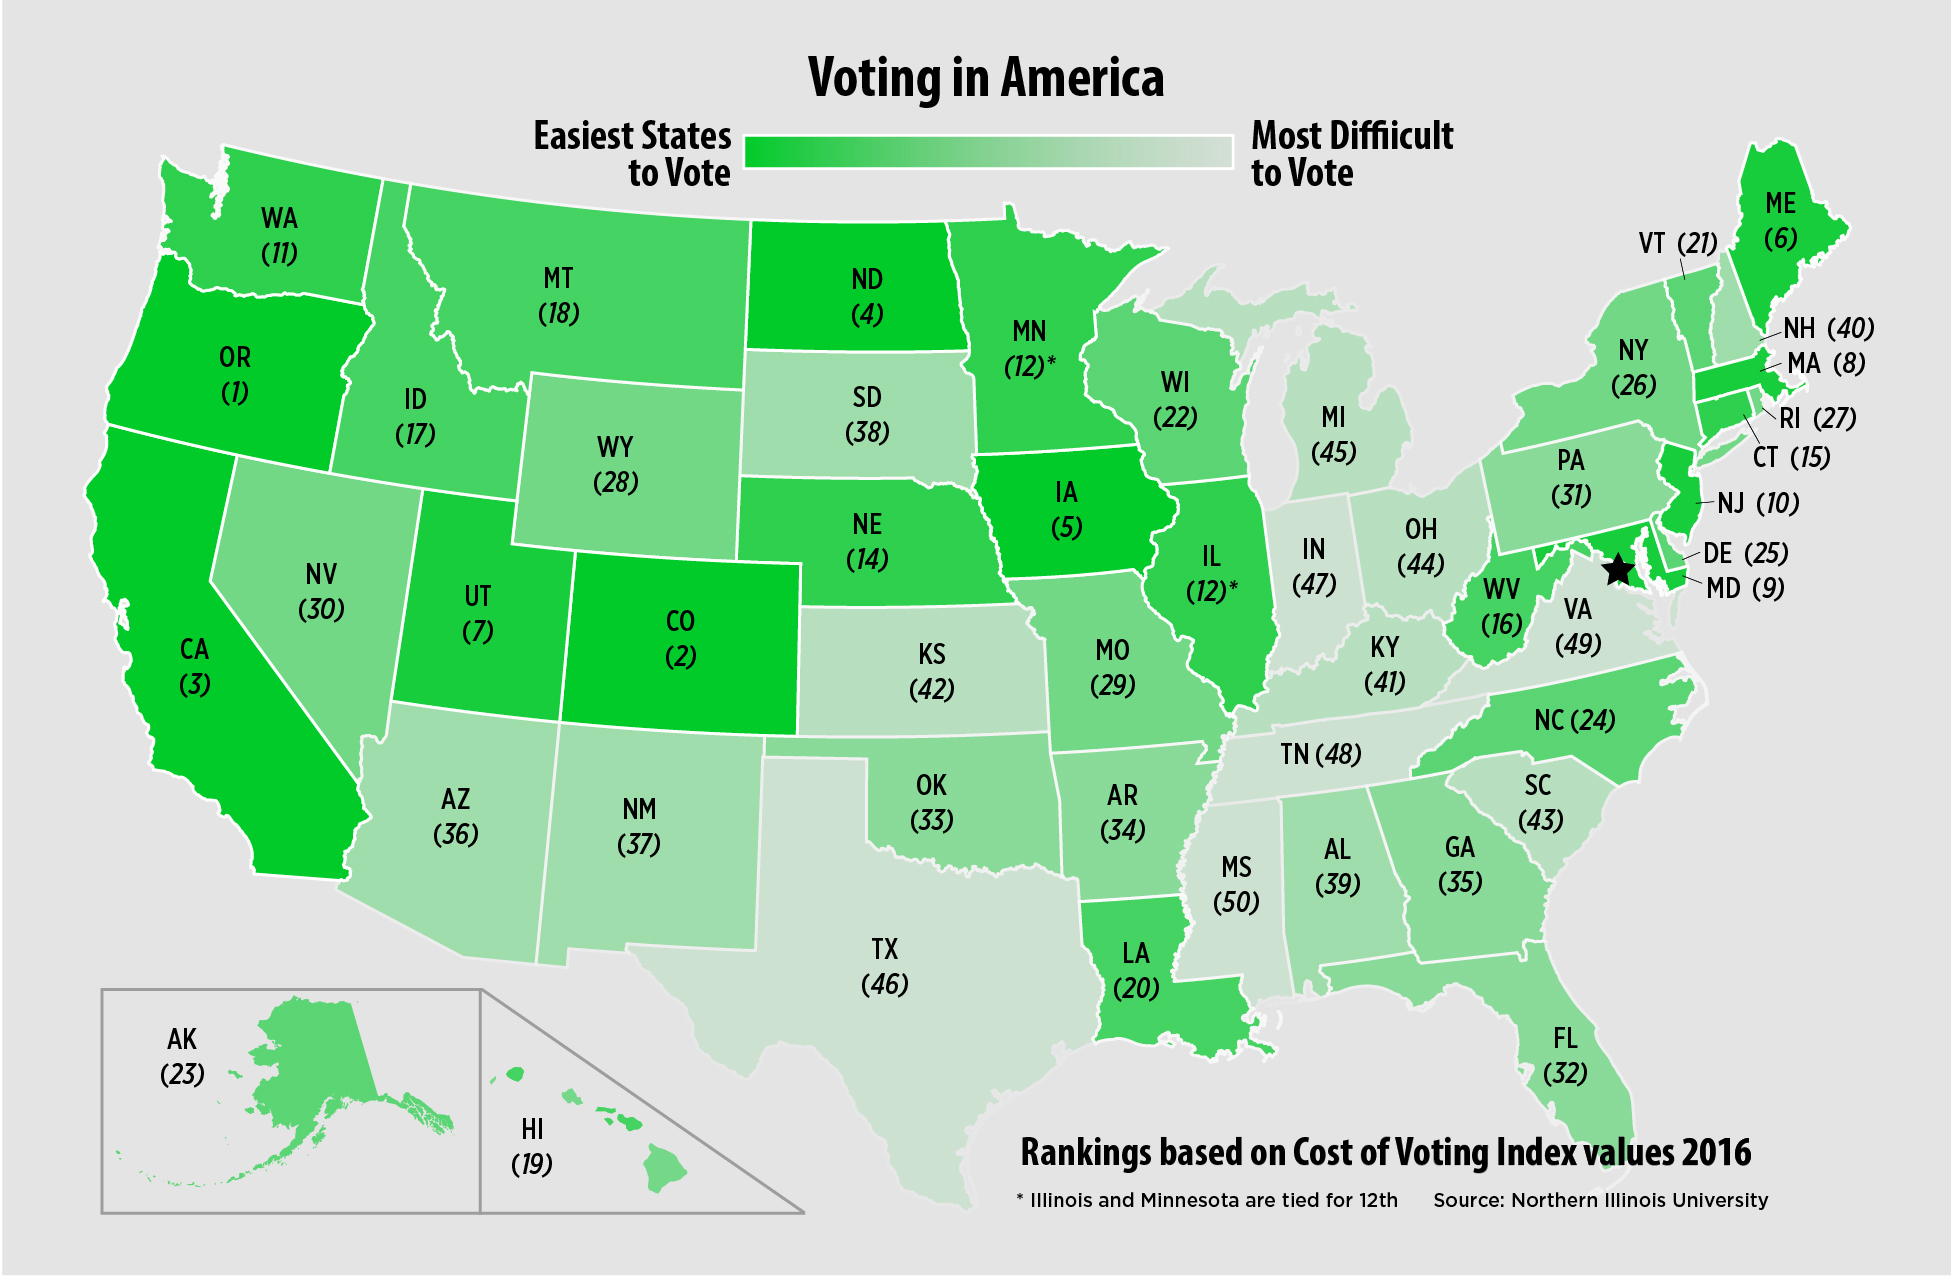 Voting access in America